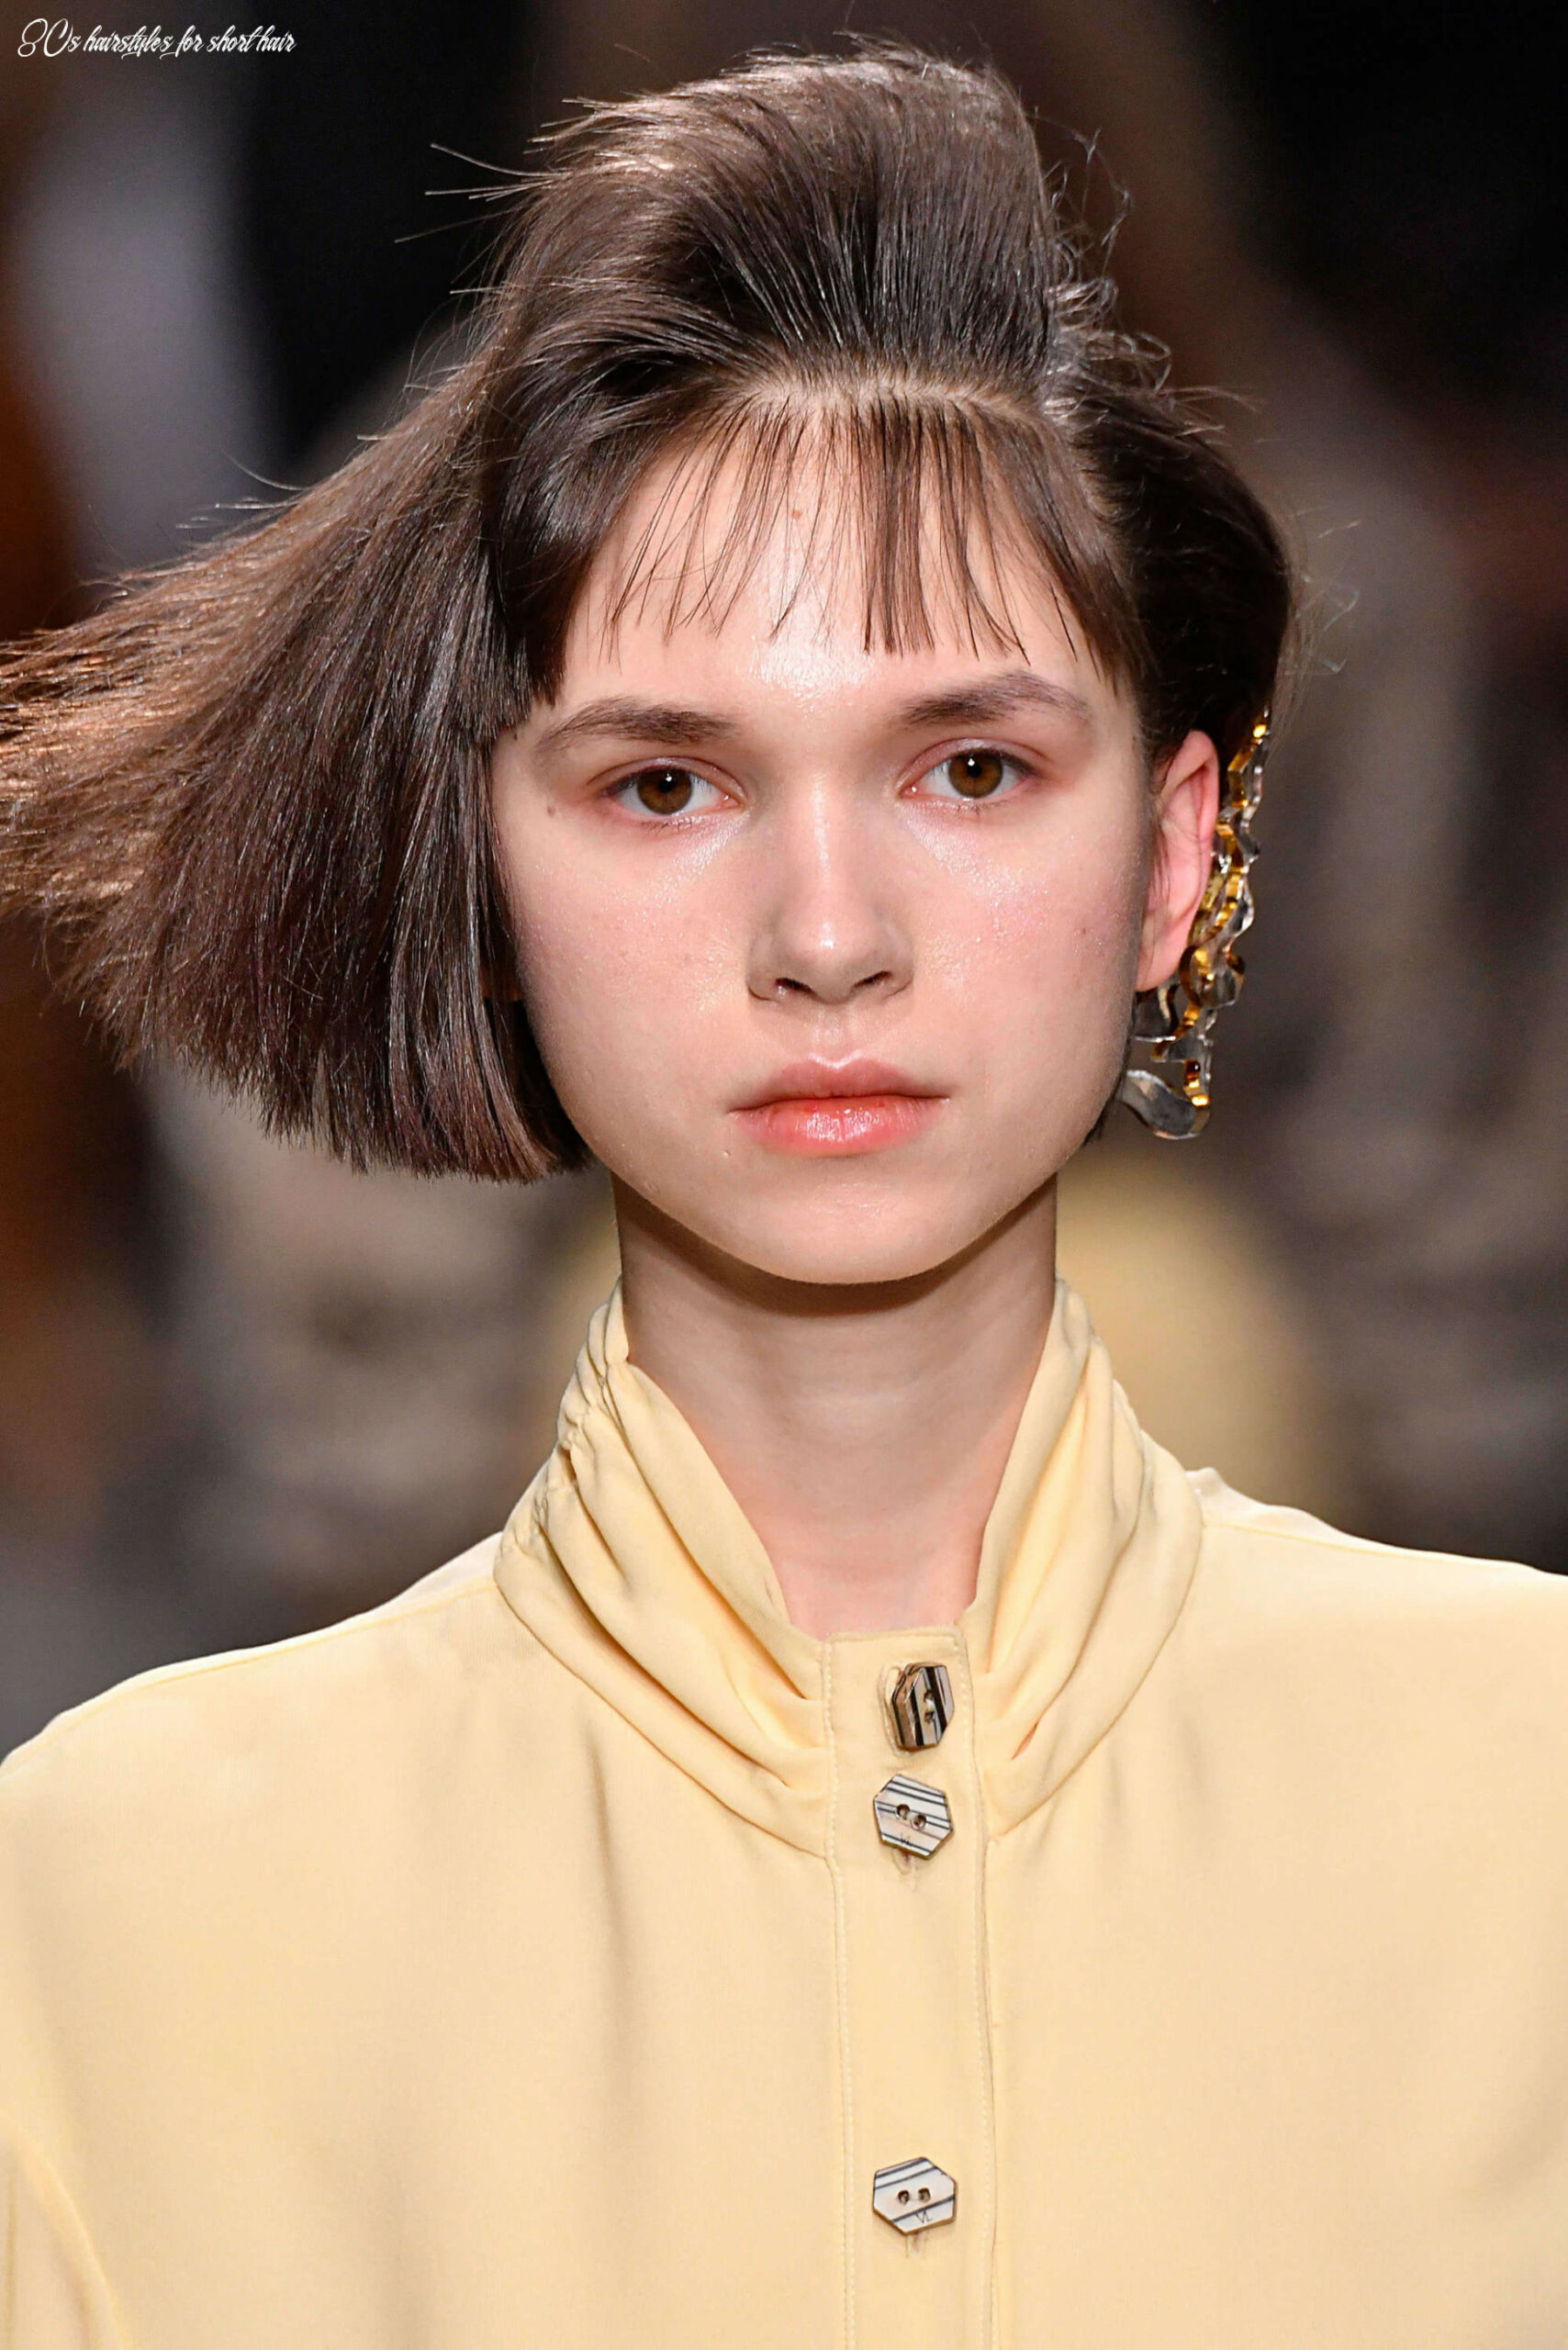 10 Totally Tubular '10s Hairstyles and Trends We're (Still) Loving ...